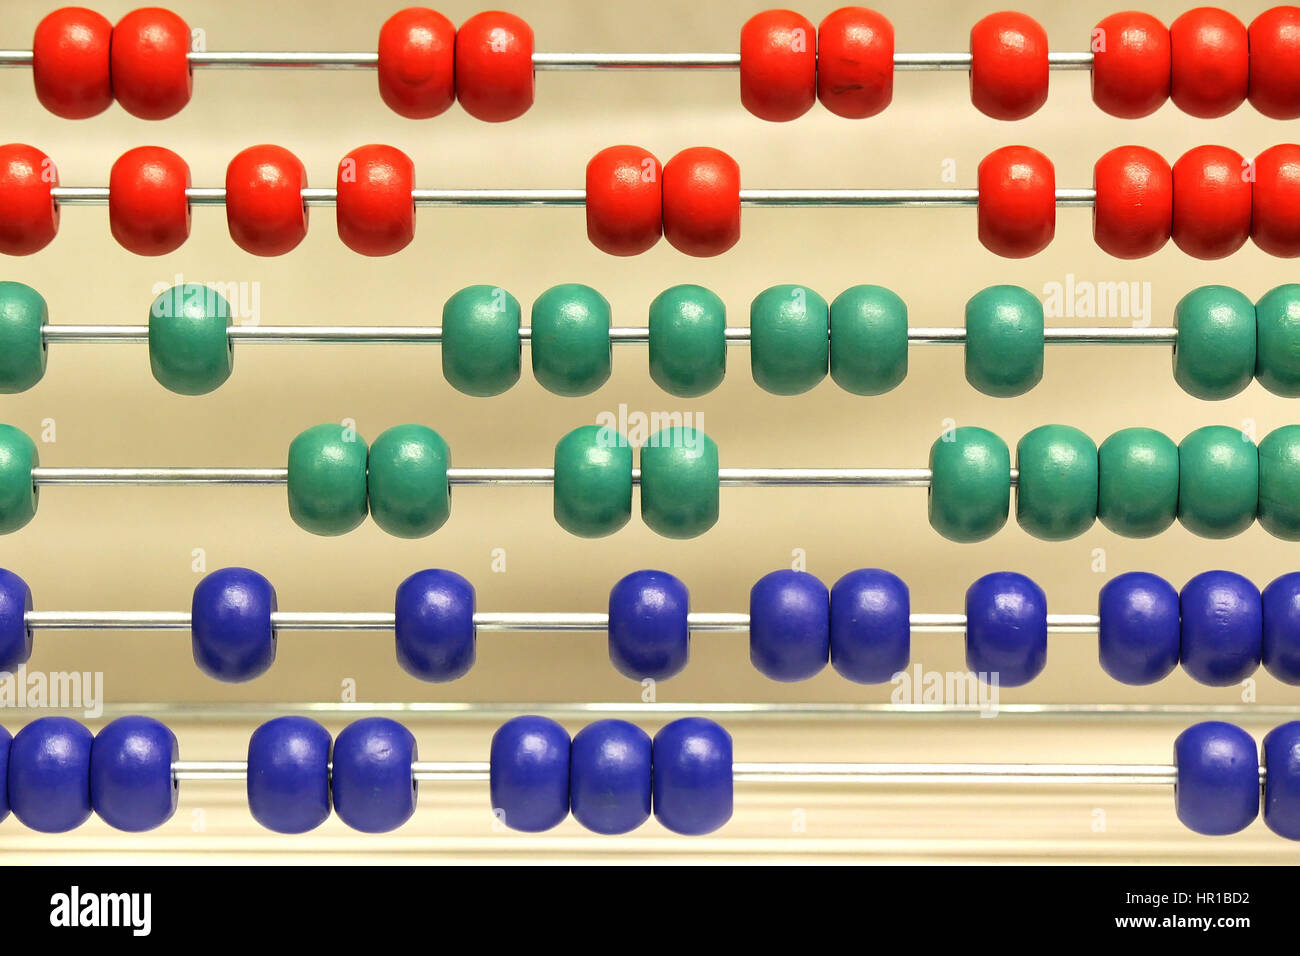 Exelent Abacus Wall Art Festooning - Wall Art Collections ...